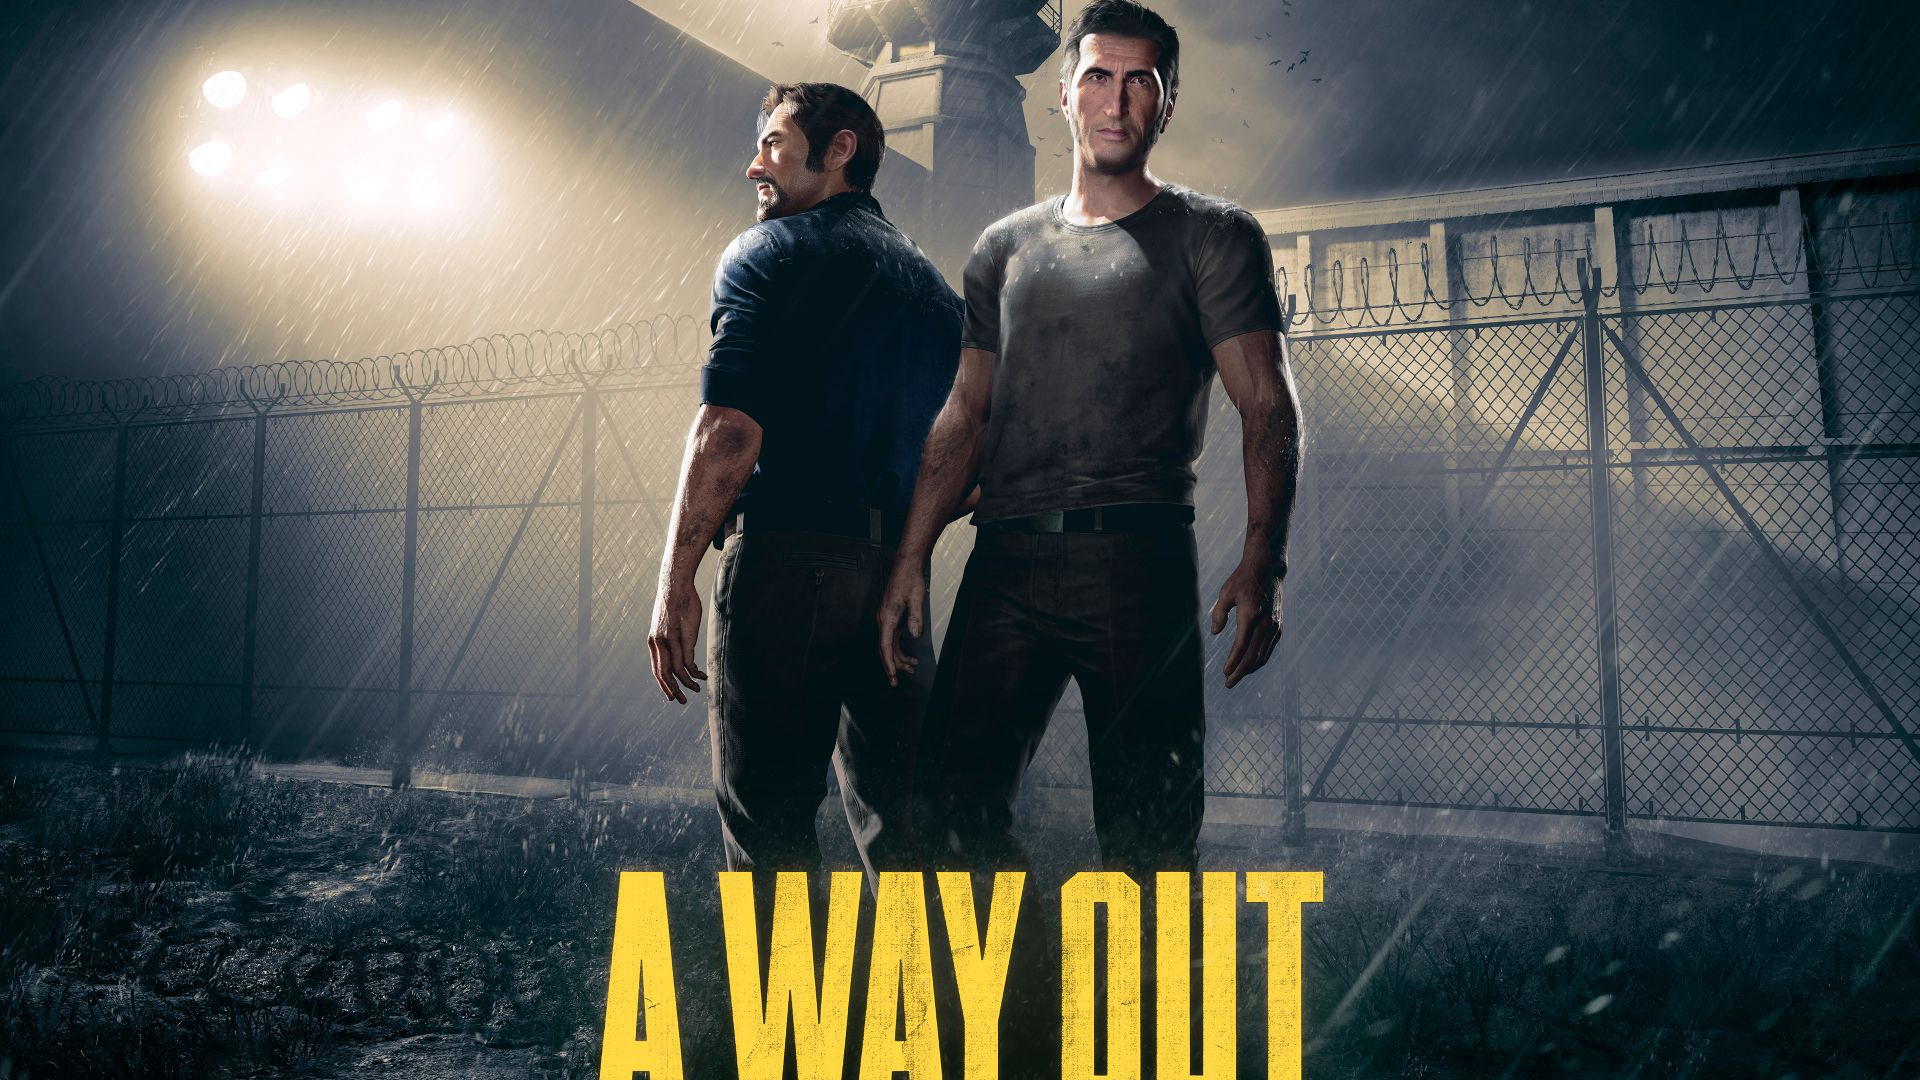 Wallpaper A Way Out, video game, 2018 game